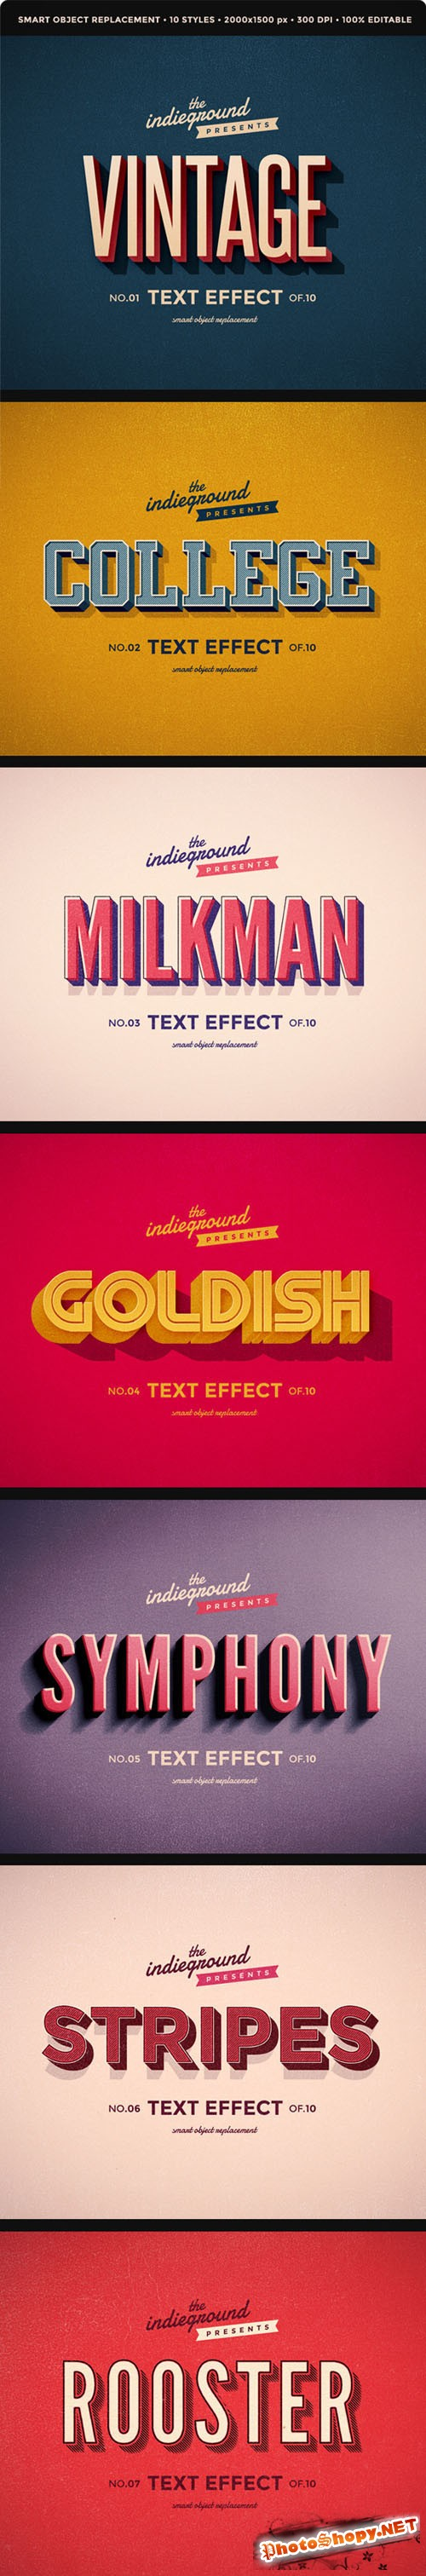 Retro Vintage Text Effects - Graphicriver 8095568